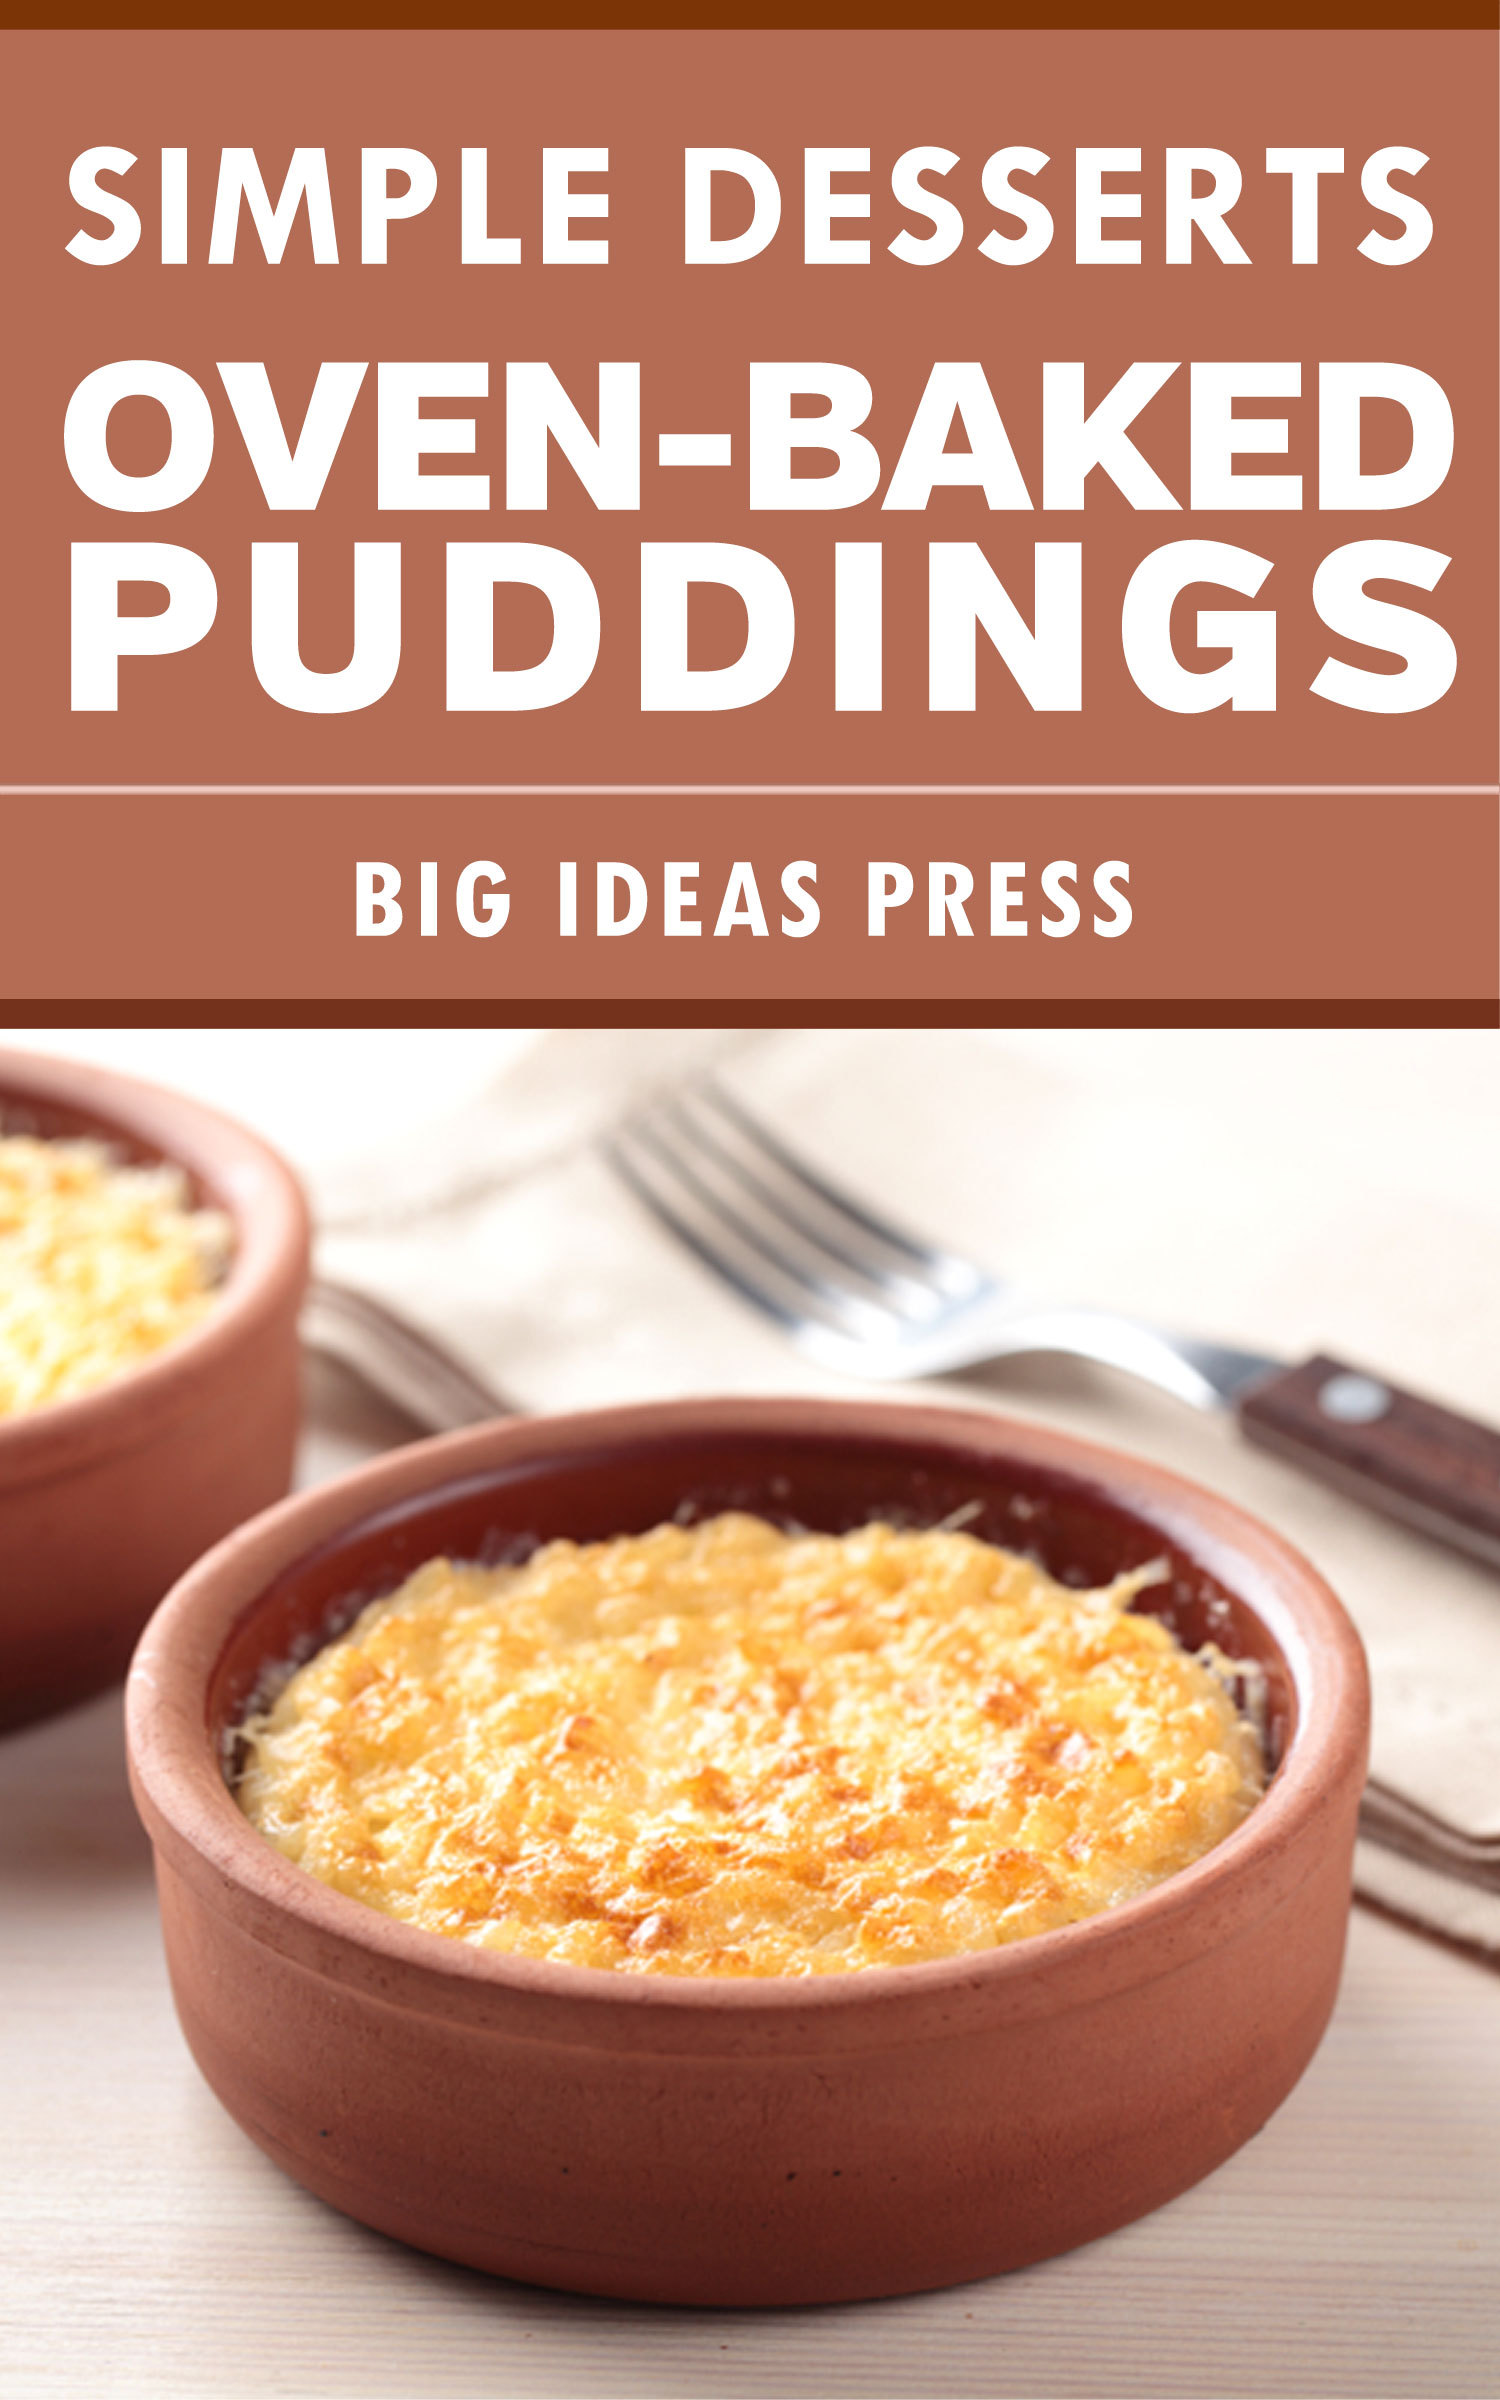 Simple Desserts: Oven-Baked Puddings